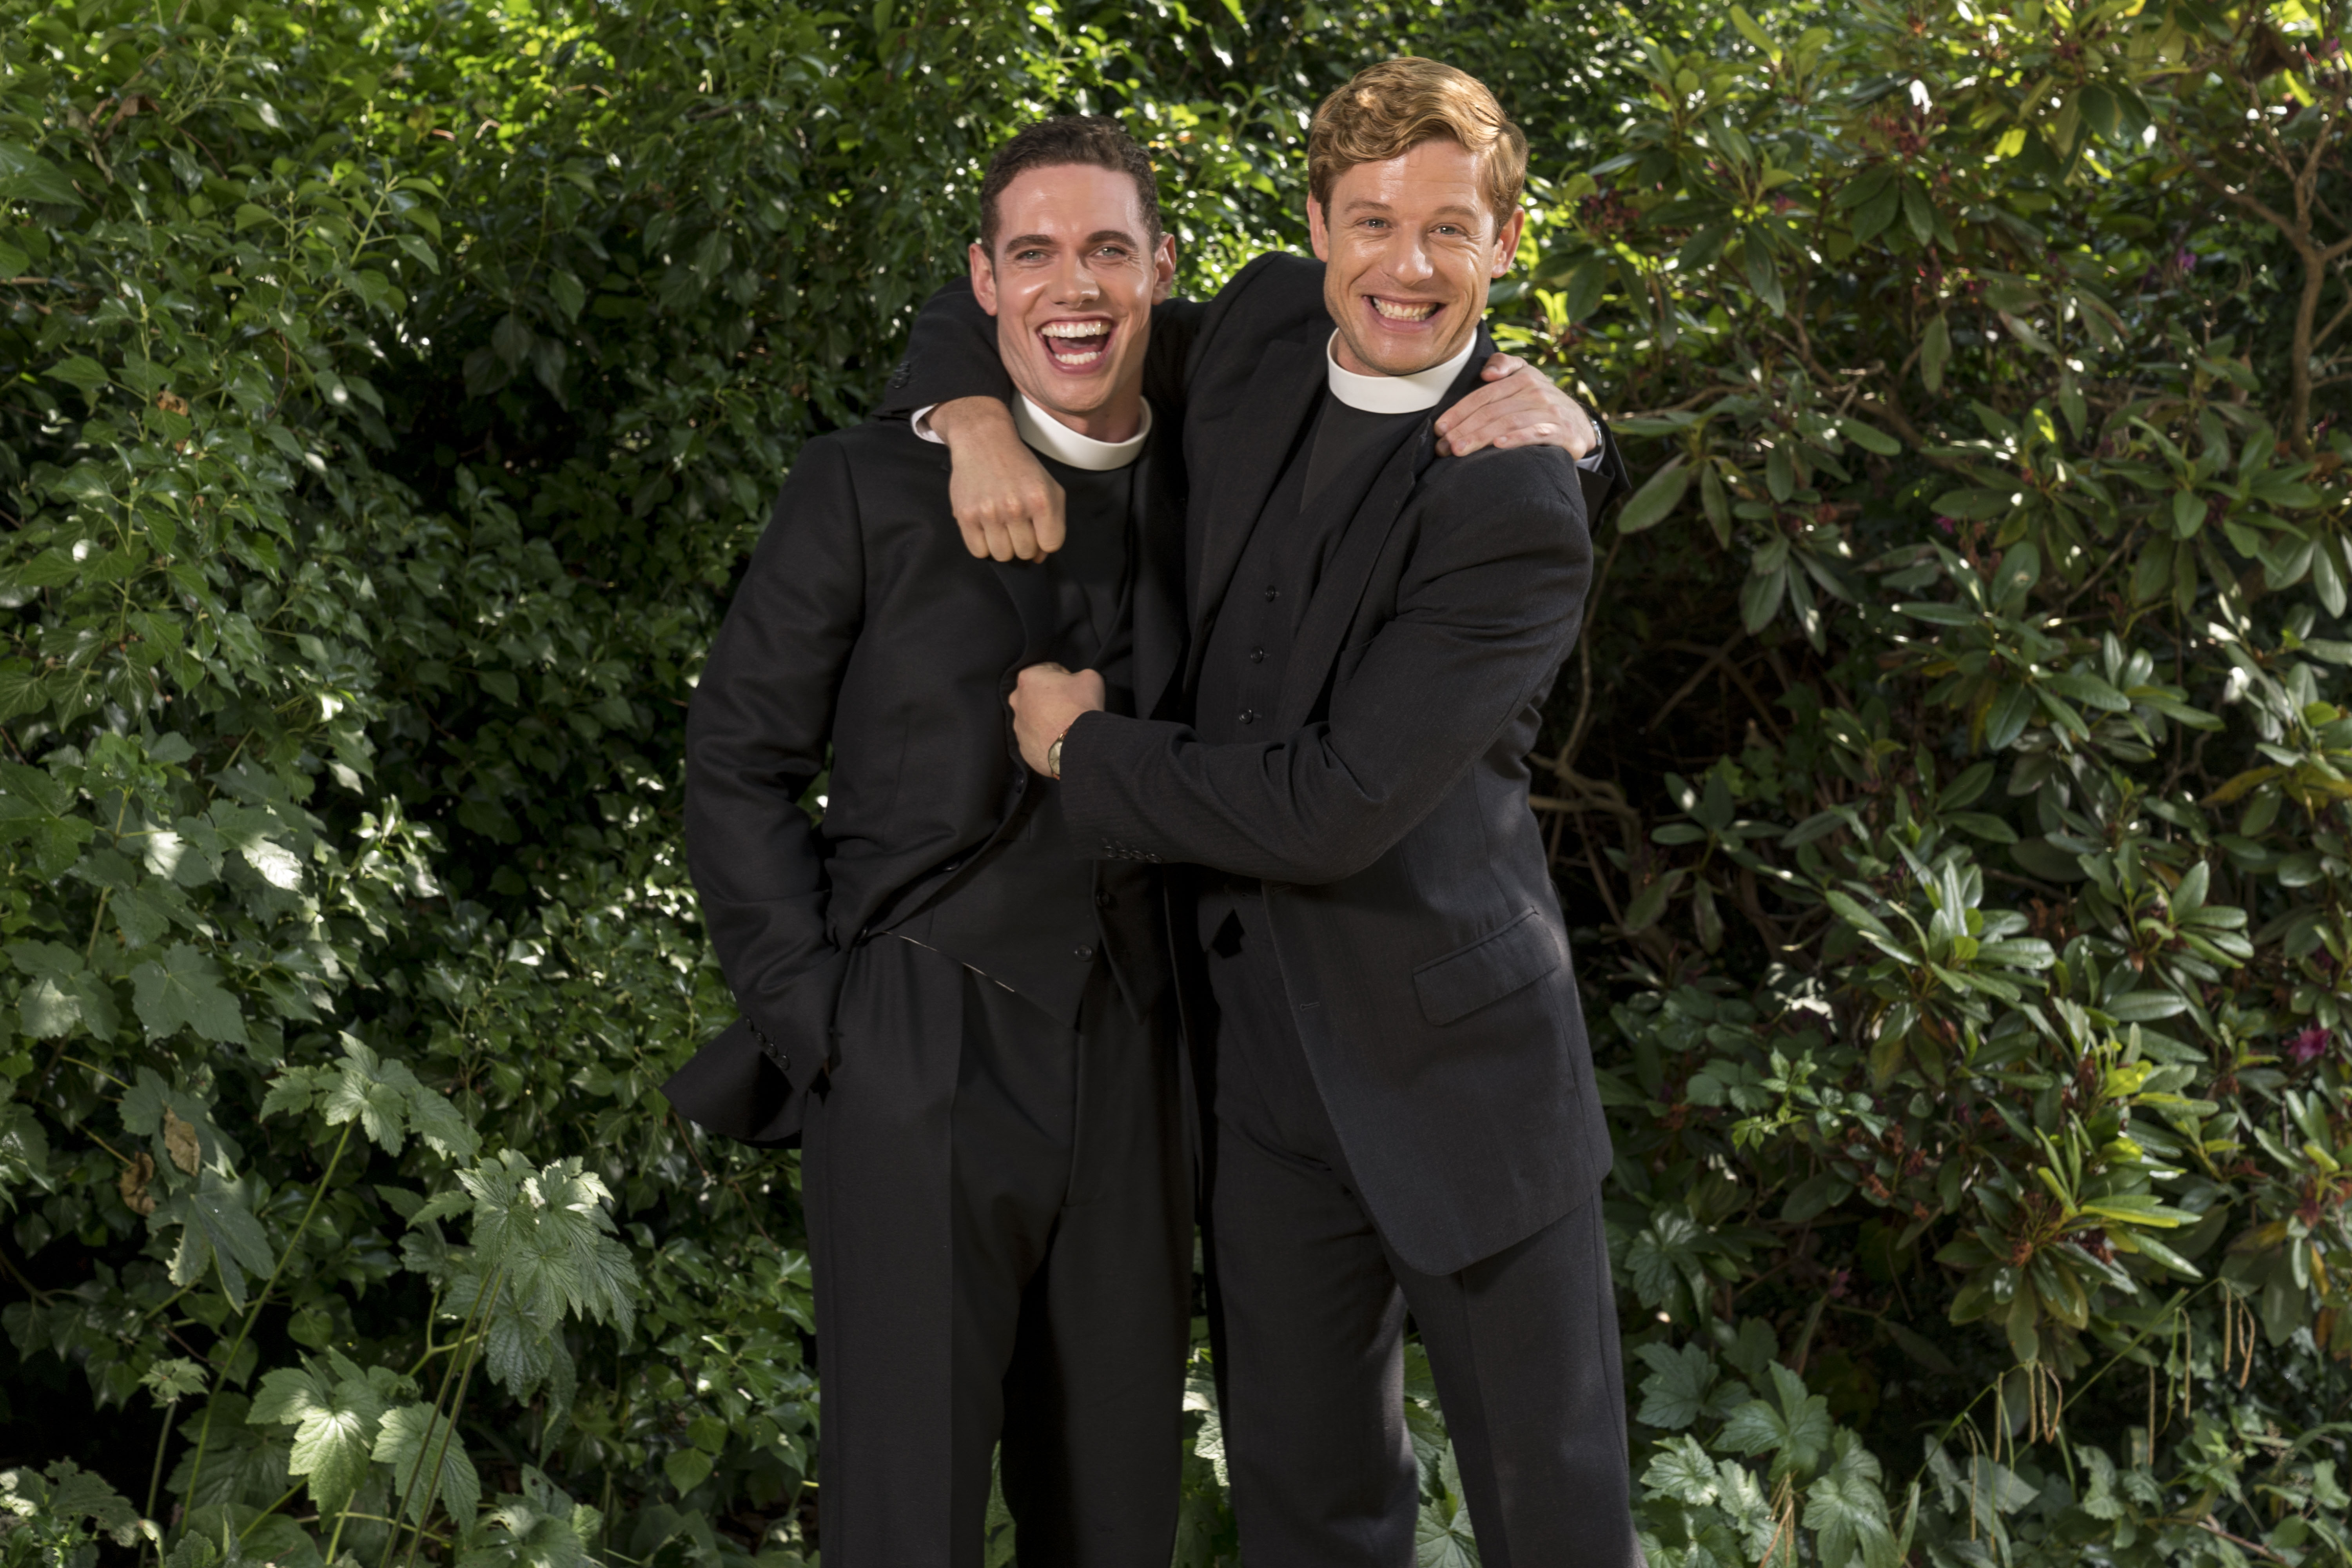 TOM BRITTANY as Rev. Will Davenport and JAMES NORTON as Sidney Chambers. (C) iTV